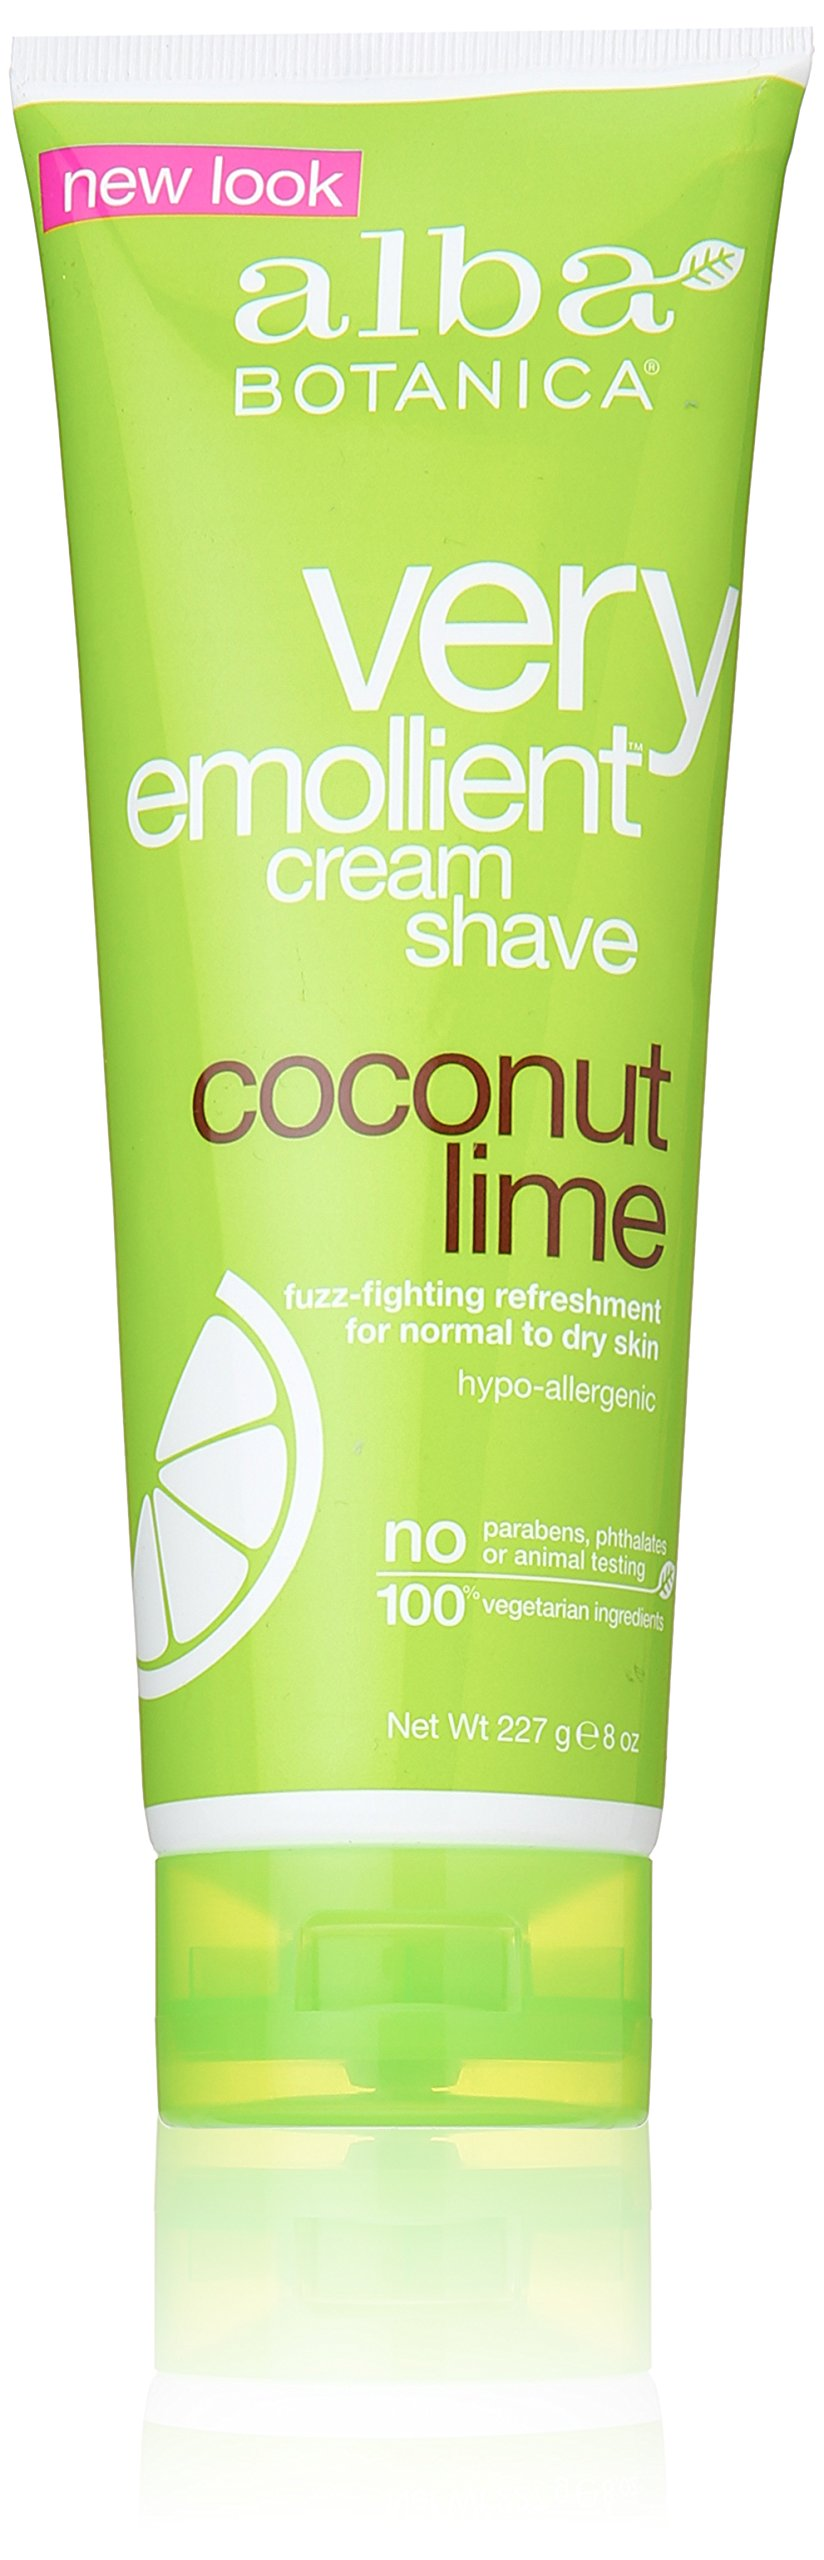 Alba Botanica Shave Creme Coconut Lime, Pack of 2